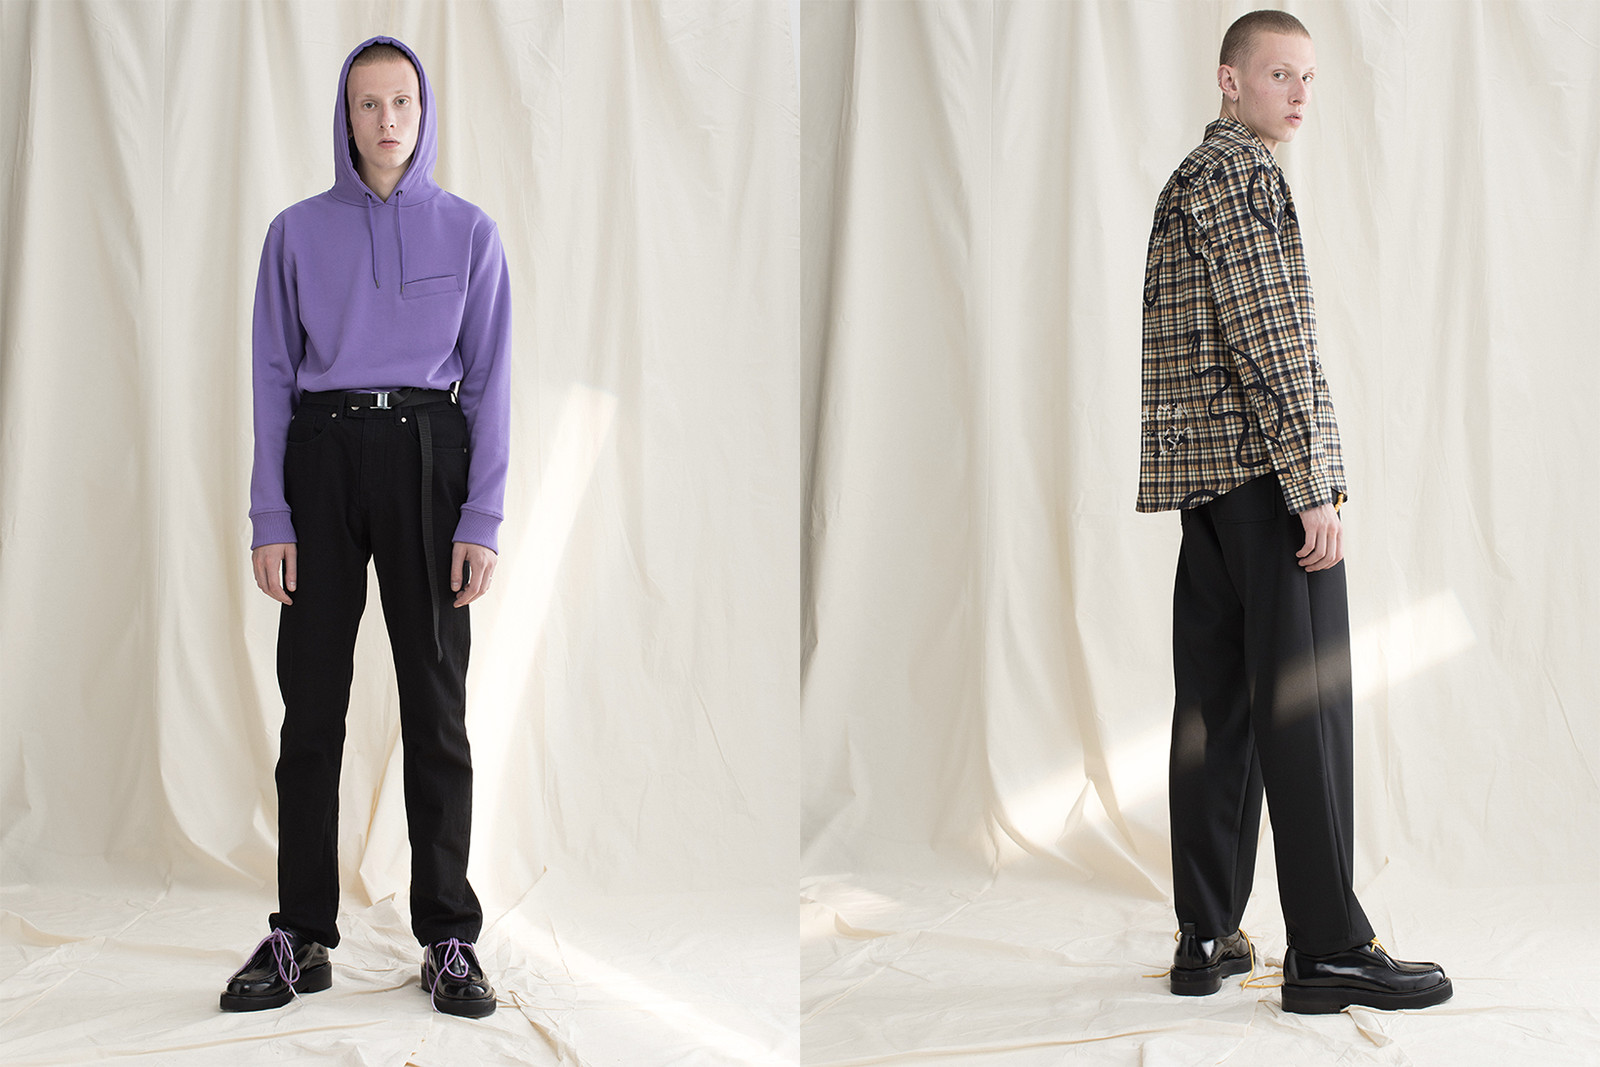 L'HOMME ROUGE interview brand introduction Sweden Scandinavia minimalism